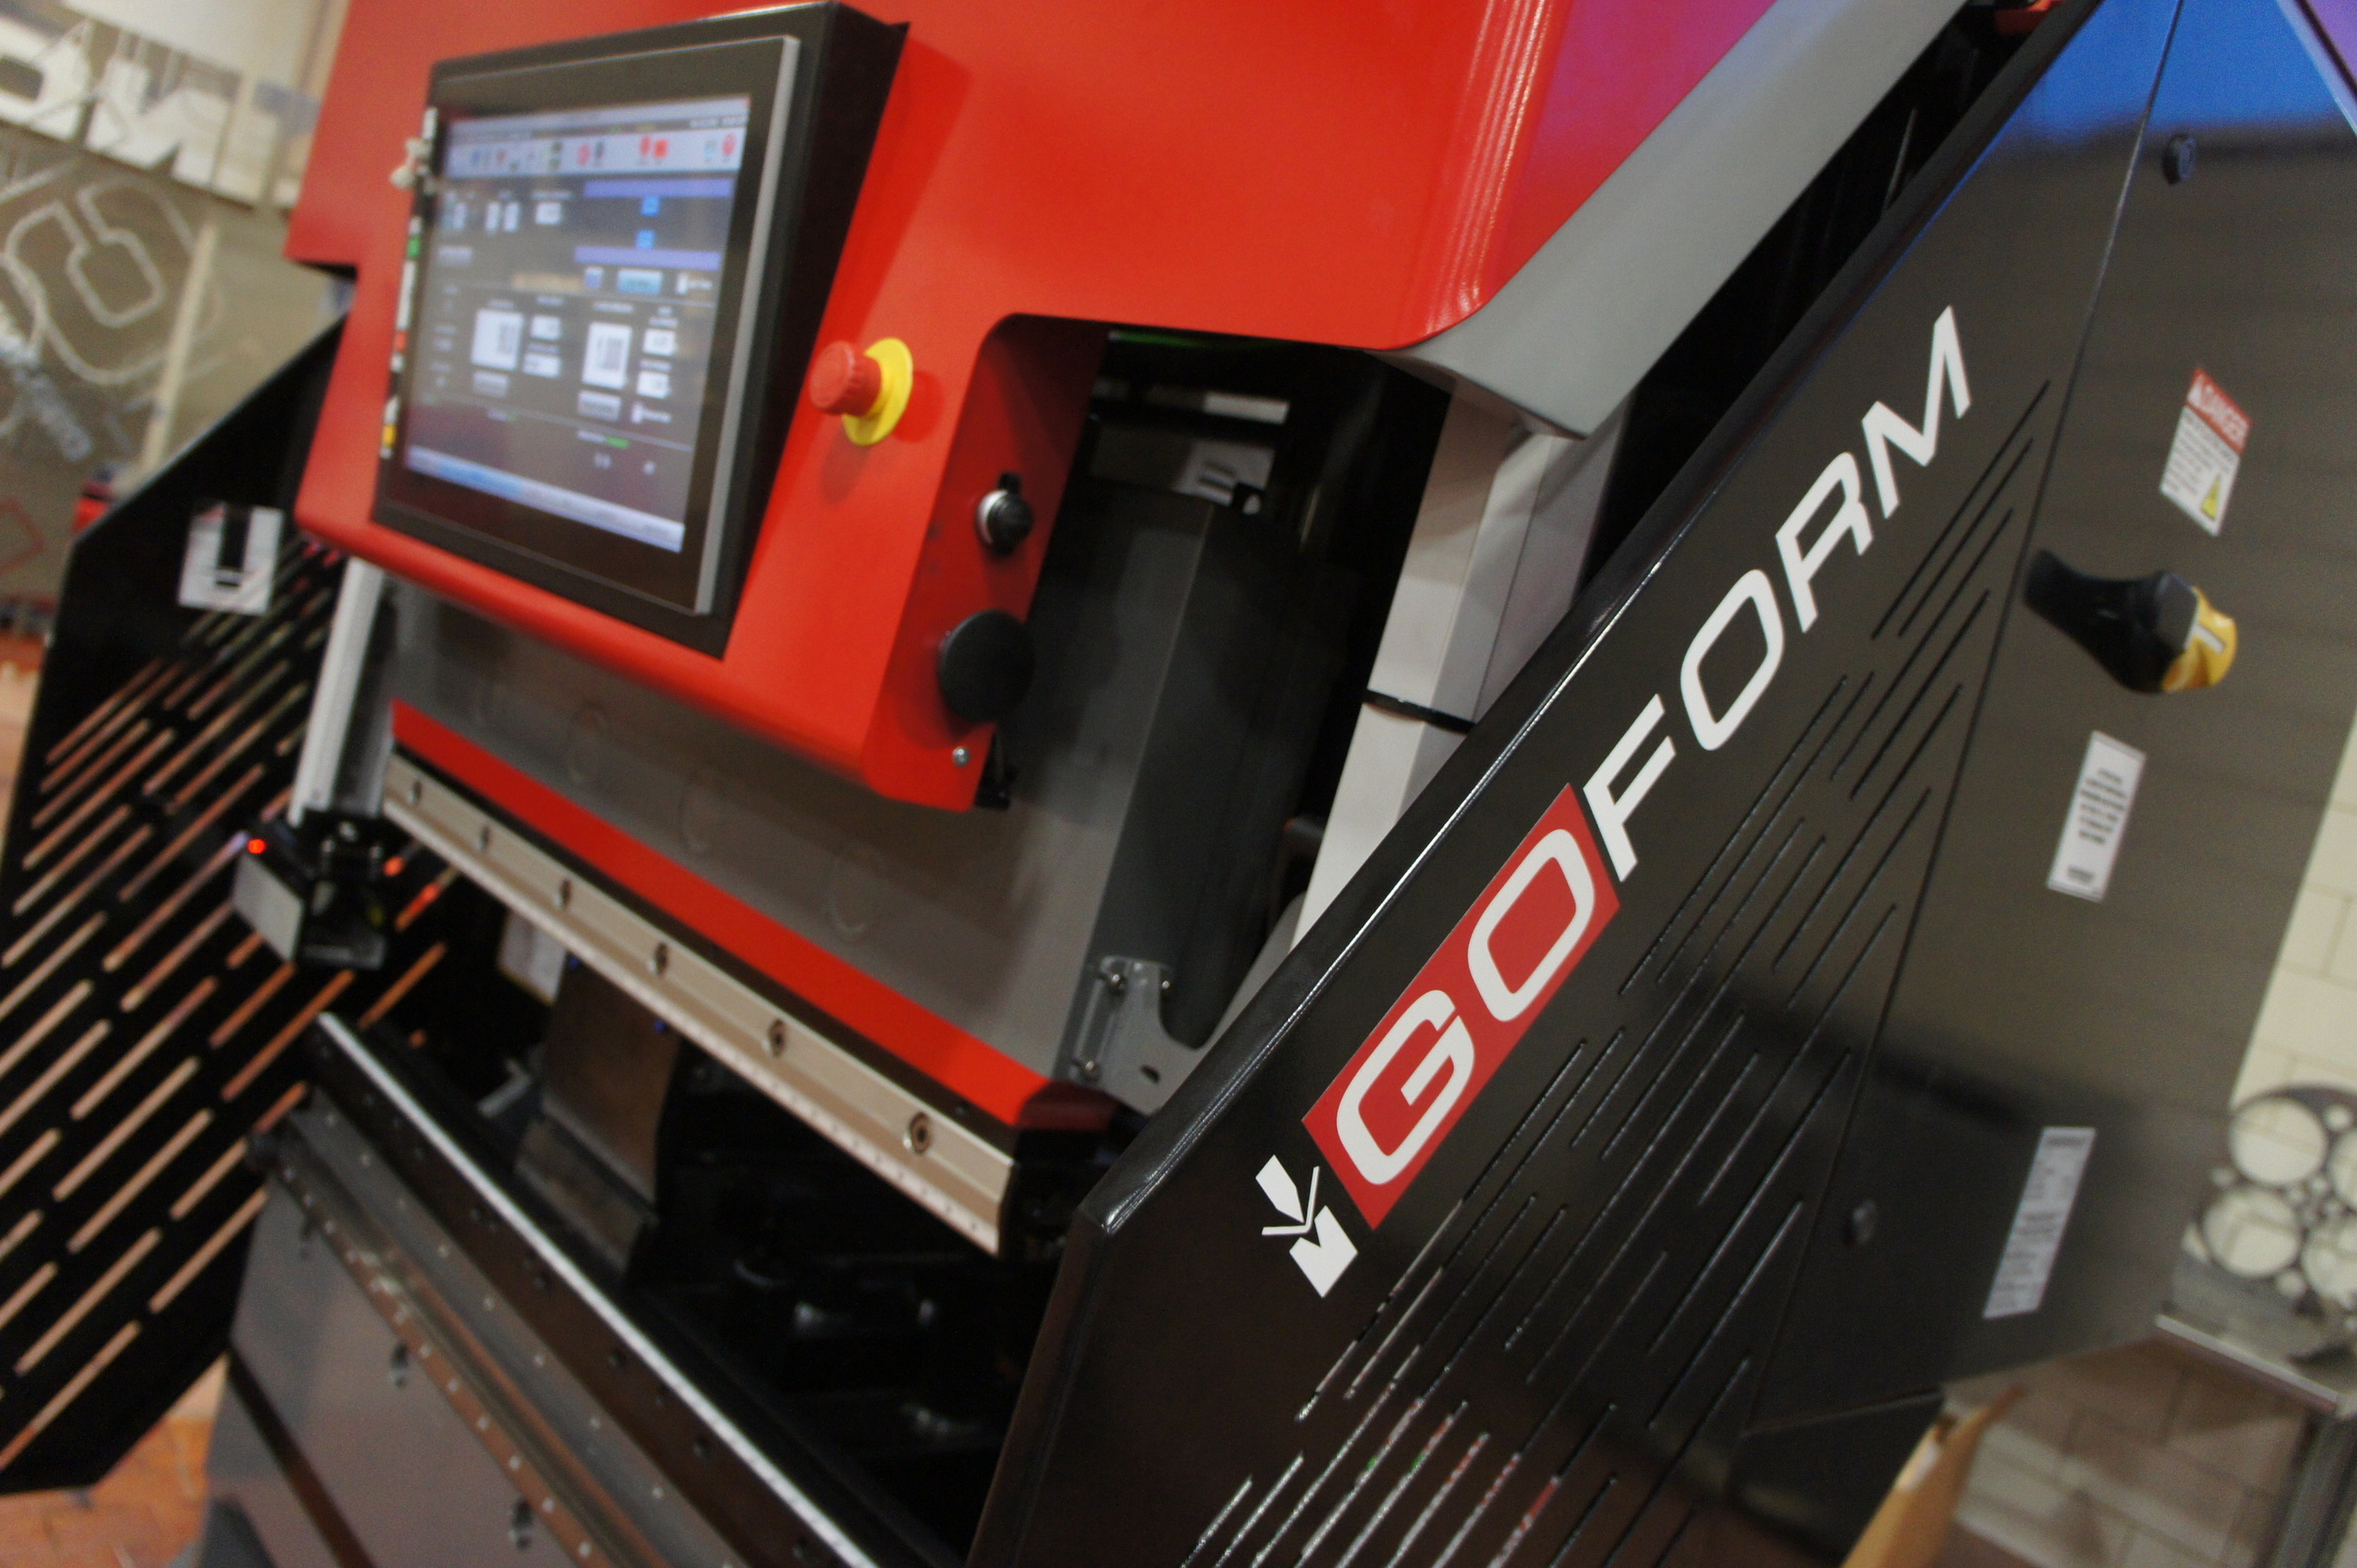 USA Made   We are one of a handful of U.S.-based, build-to-order machine tool manufacturers, and have shipped more than 50,000 machines in over a 100 years of operation.